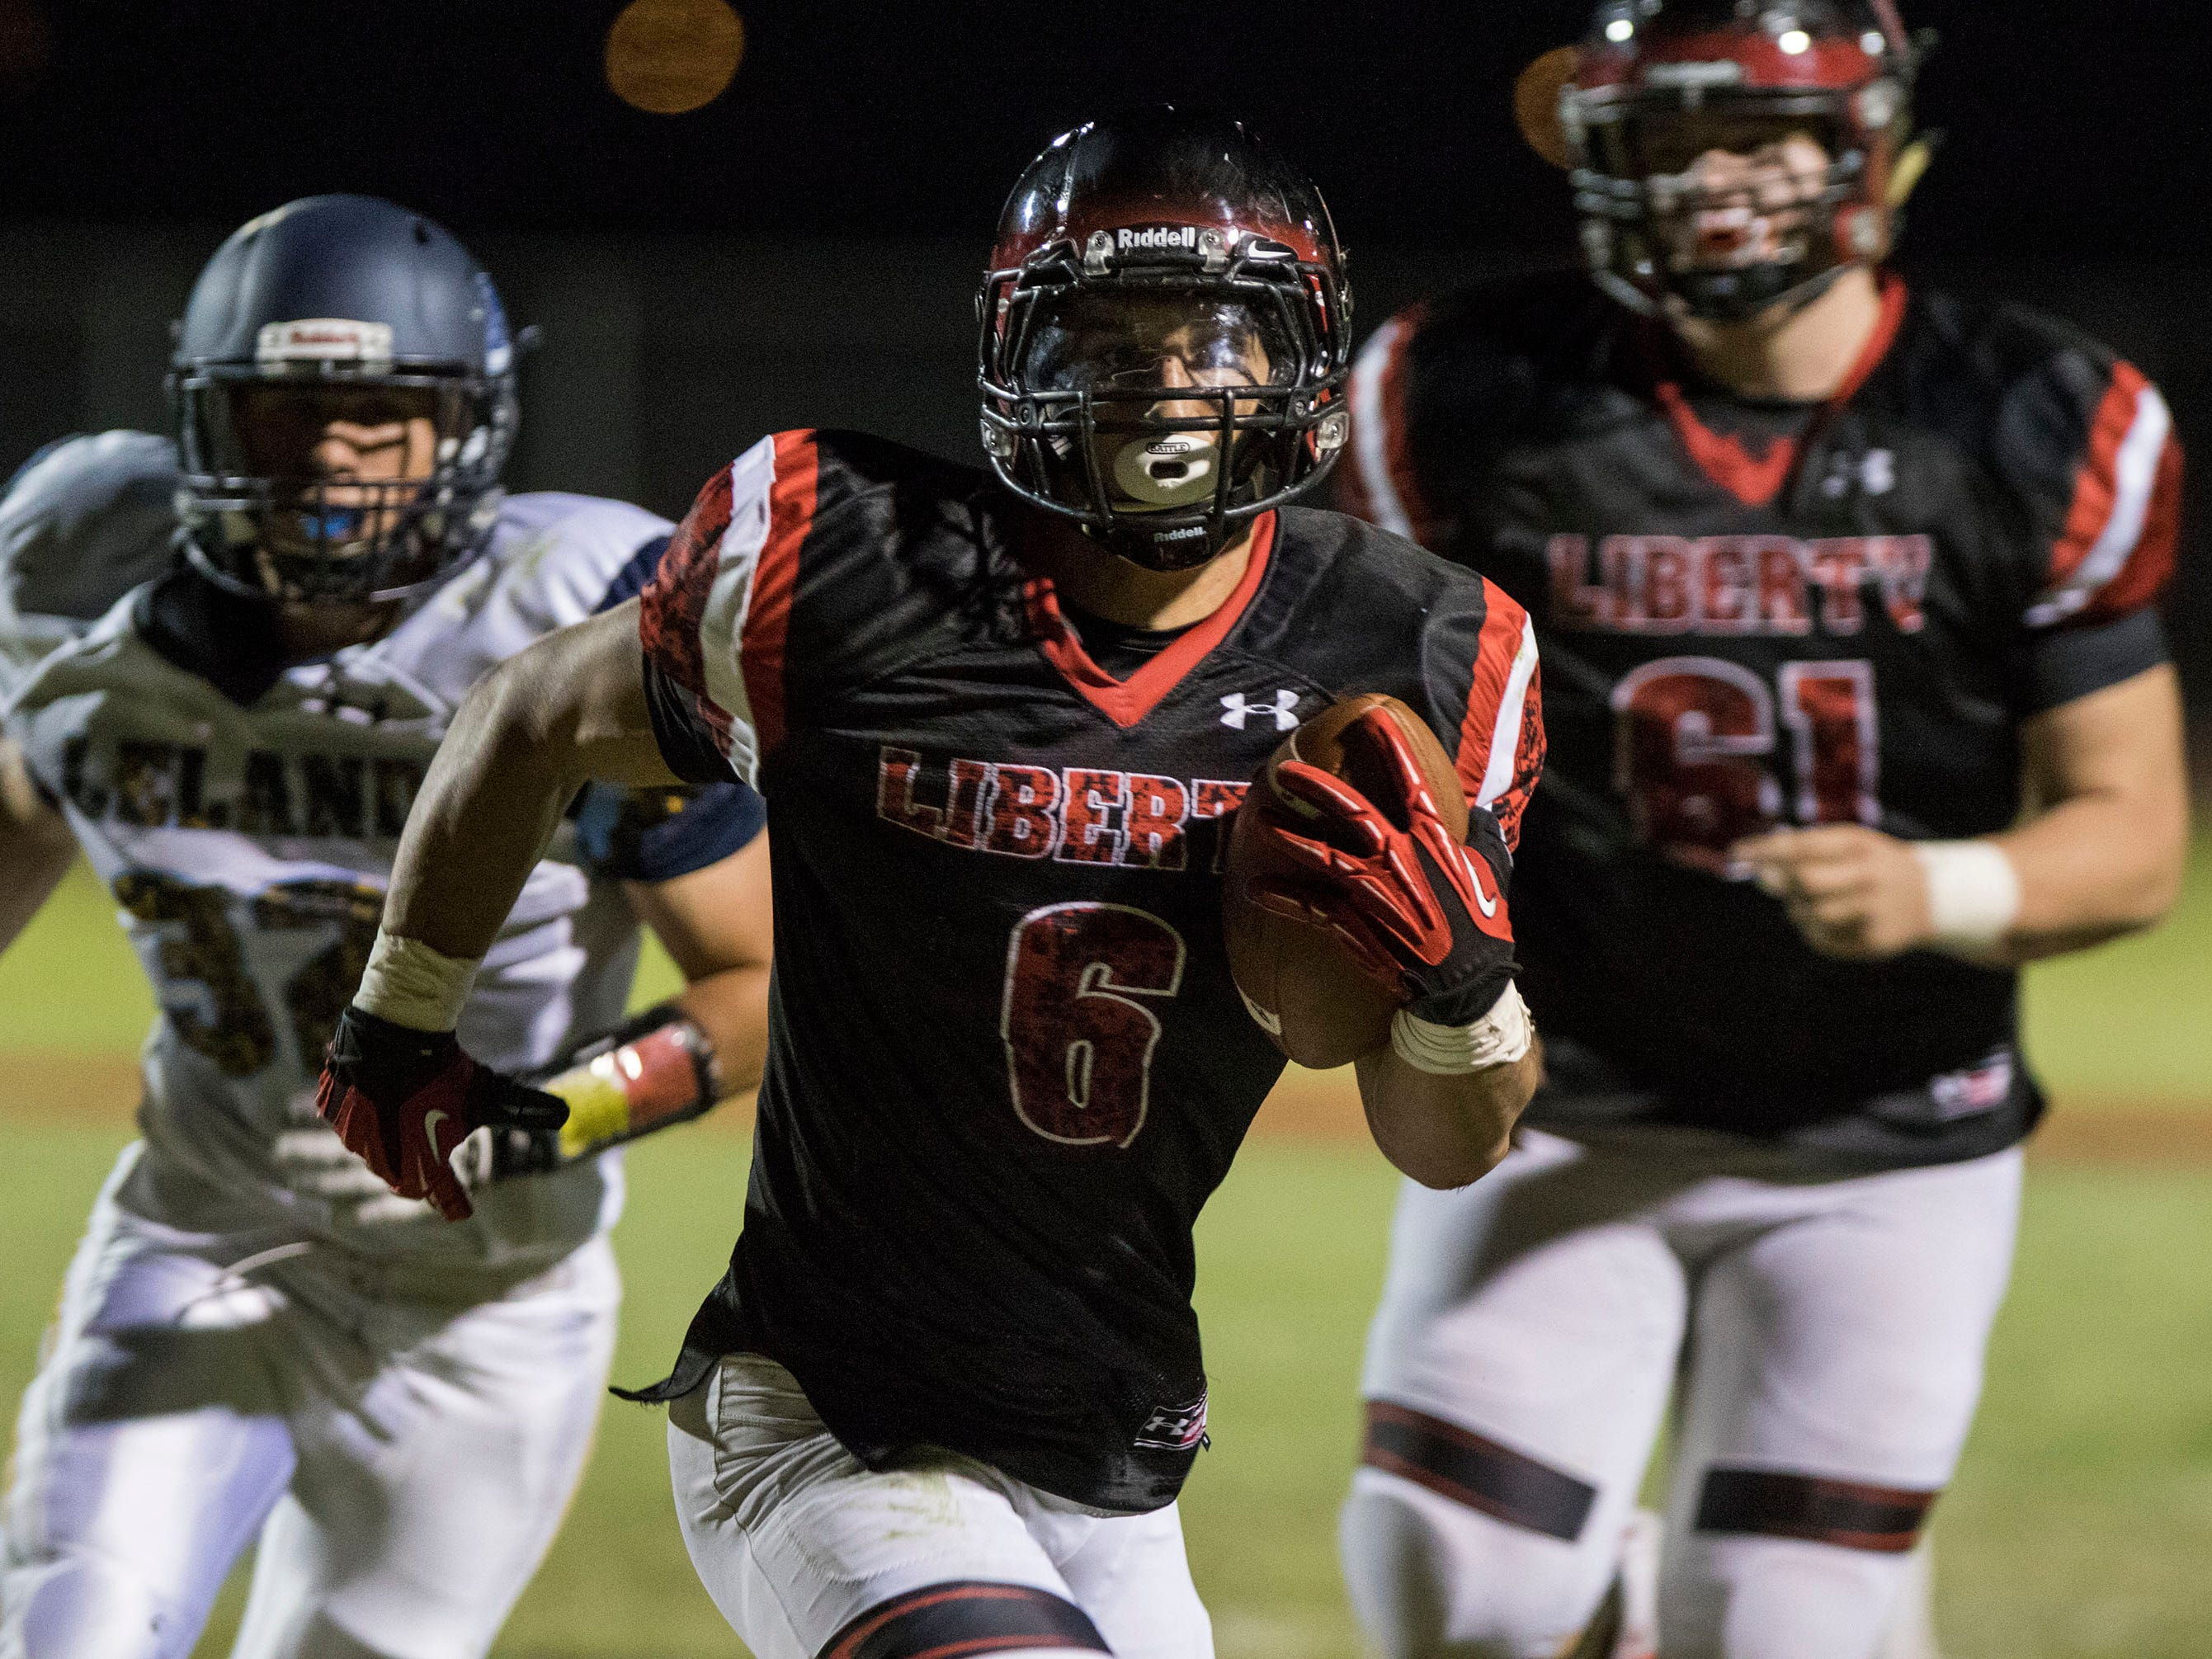 Liberty's Jett Kinsch finds running room against the Leland (CA) defense during their game in Peoria Friday, Sept.14, 2018. #azhsfb